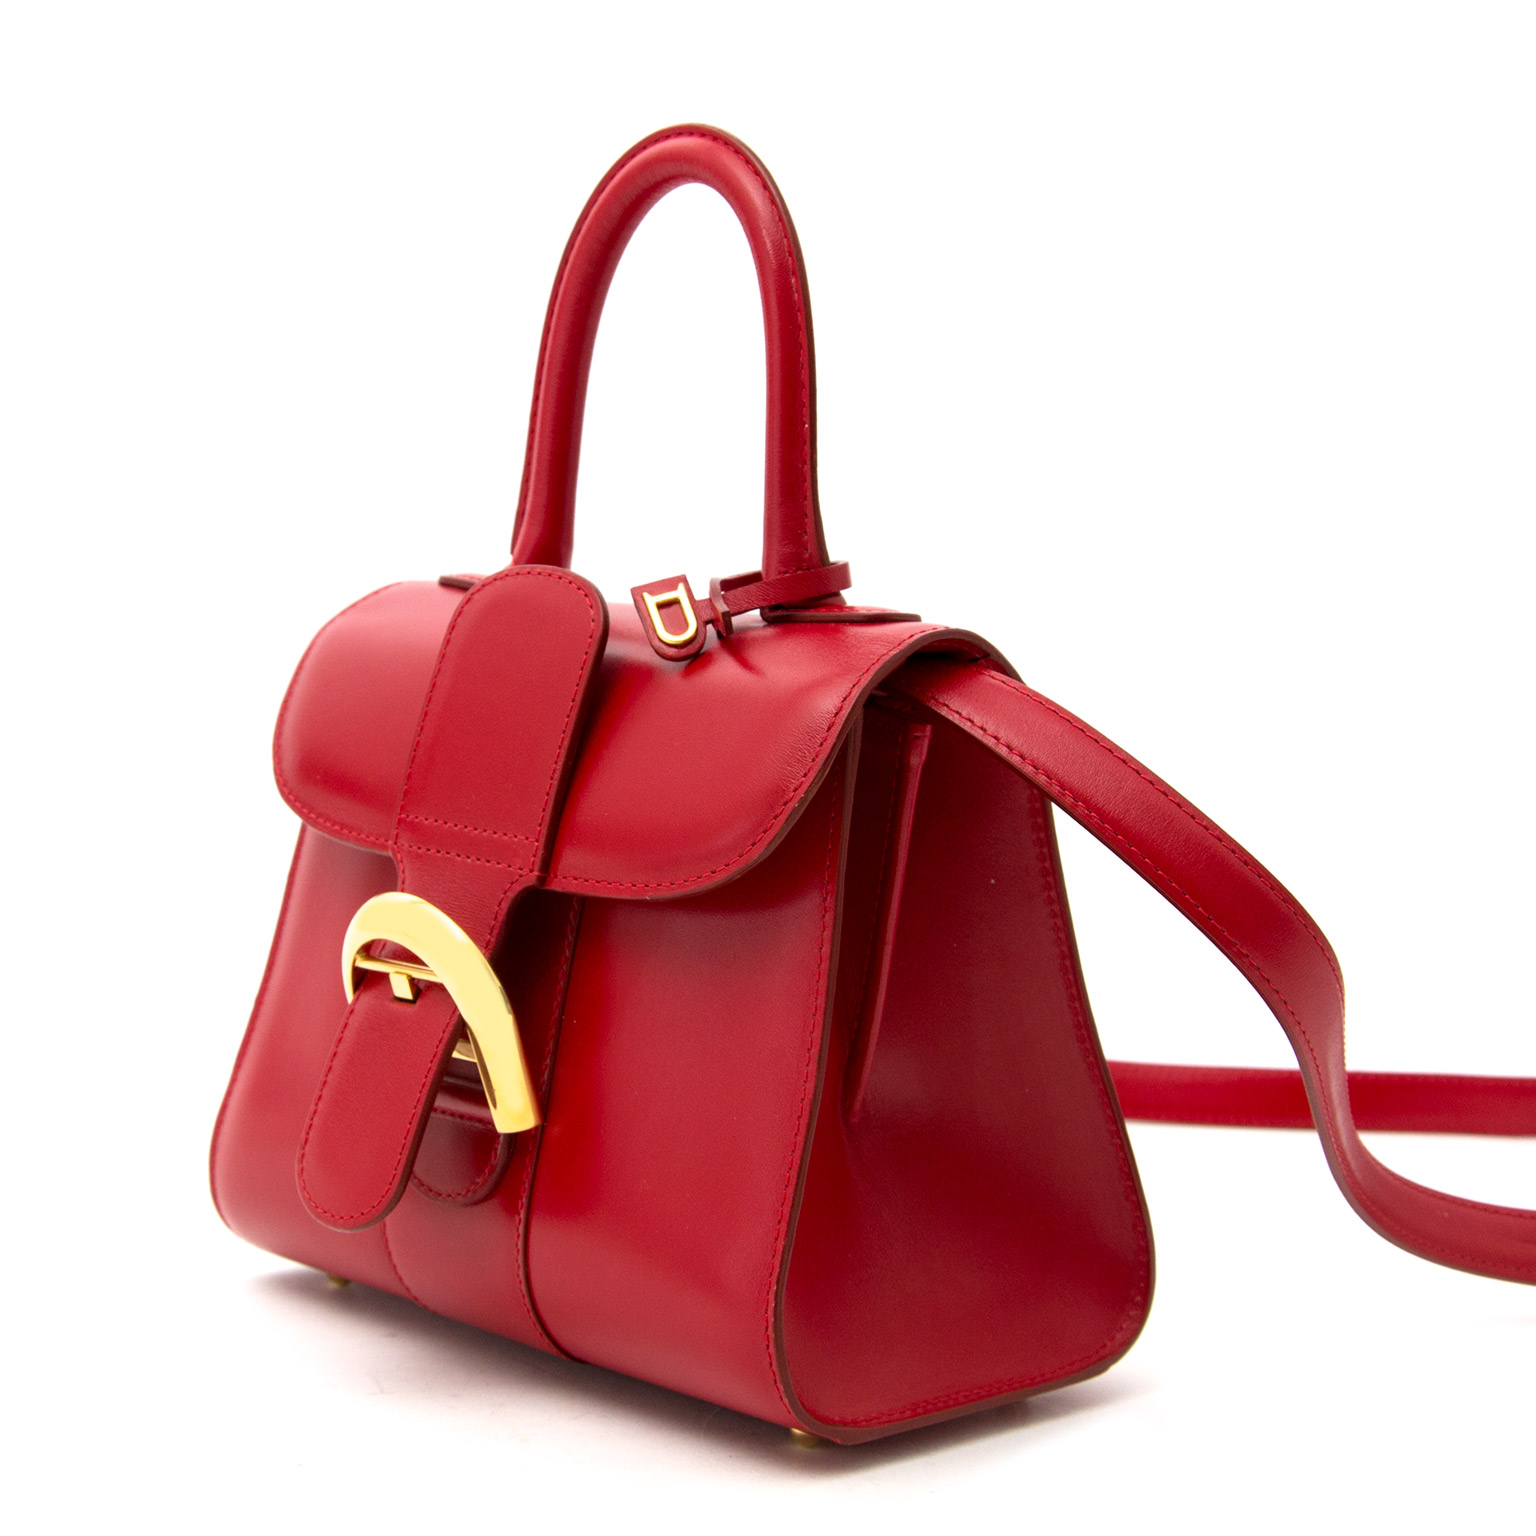 Vintage Delvaux Brillant red bag for the best price at Labellov webshop. Safe and secure online shopping with 100% authenticity. Vintage Delvaux Brillant rouge sac à main pour le meilleur prix.